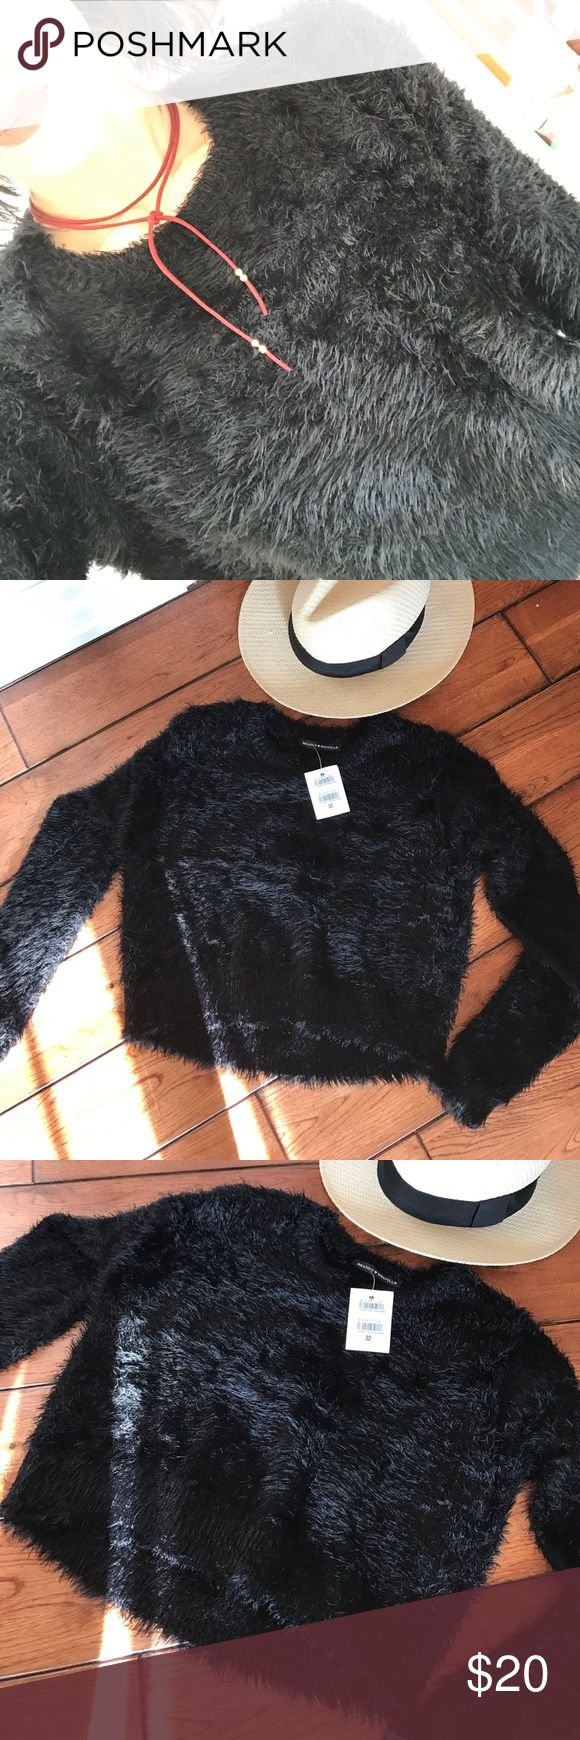 Furry black cozy NWT Brandy Melville sweater💋 Furry black cozy NWT Brandy Melville sweater💋 size 32, I believe that's a small. Very cozy and luxurious I got brand new from another Posher but I don't love the way it fits me. It's a beautiful sweater, a little bit higher in the front than back, making for a very trendy almost crop top type look!! 🌑🔮 Brandy Melville Sweaters Crew & Scoop Necks